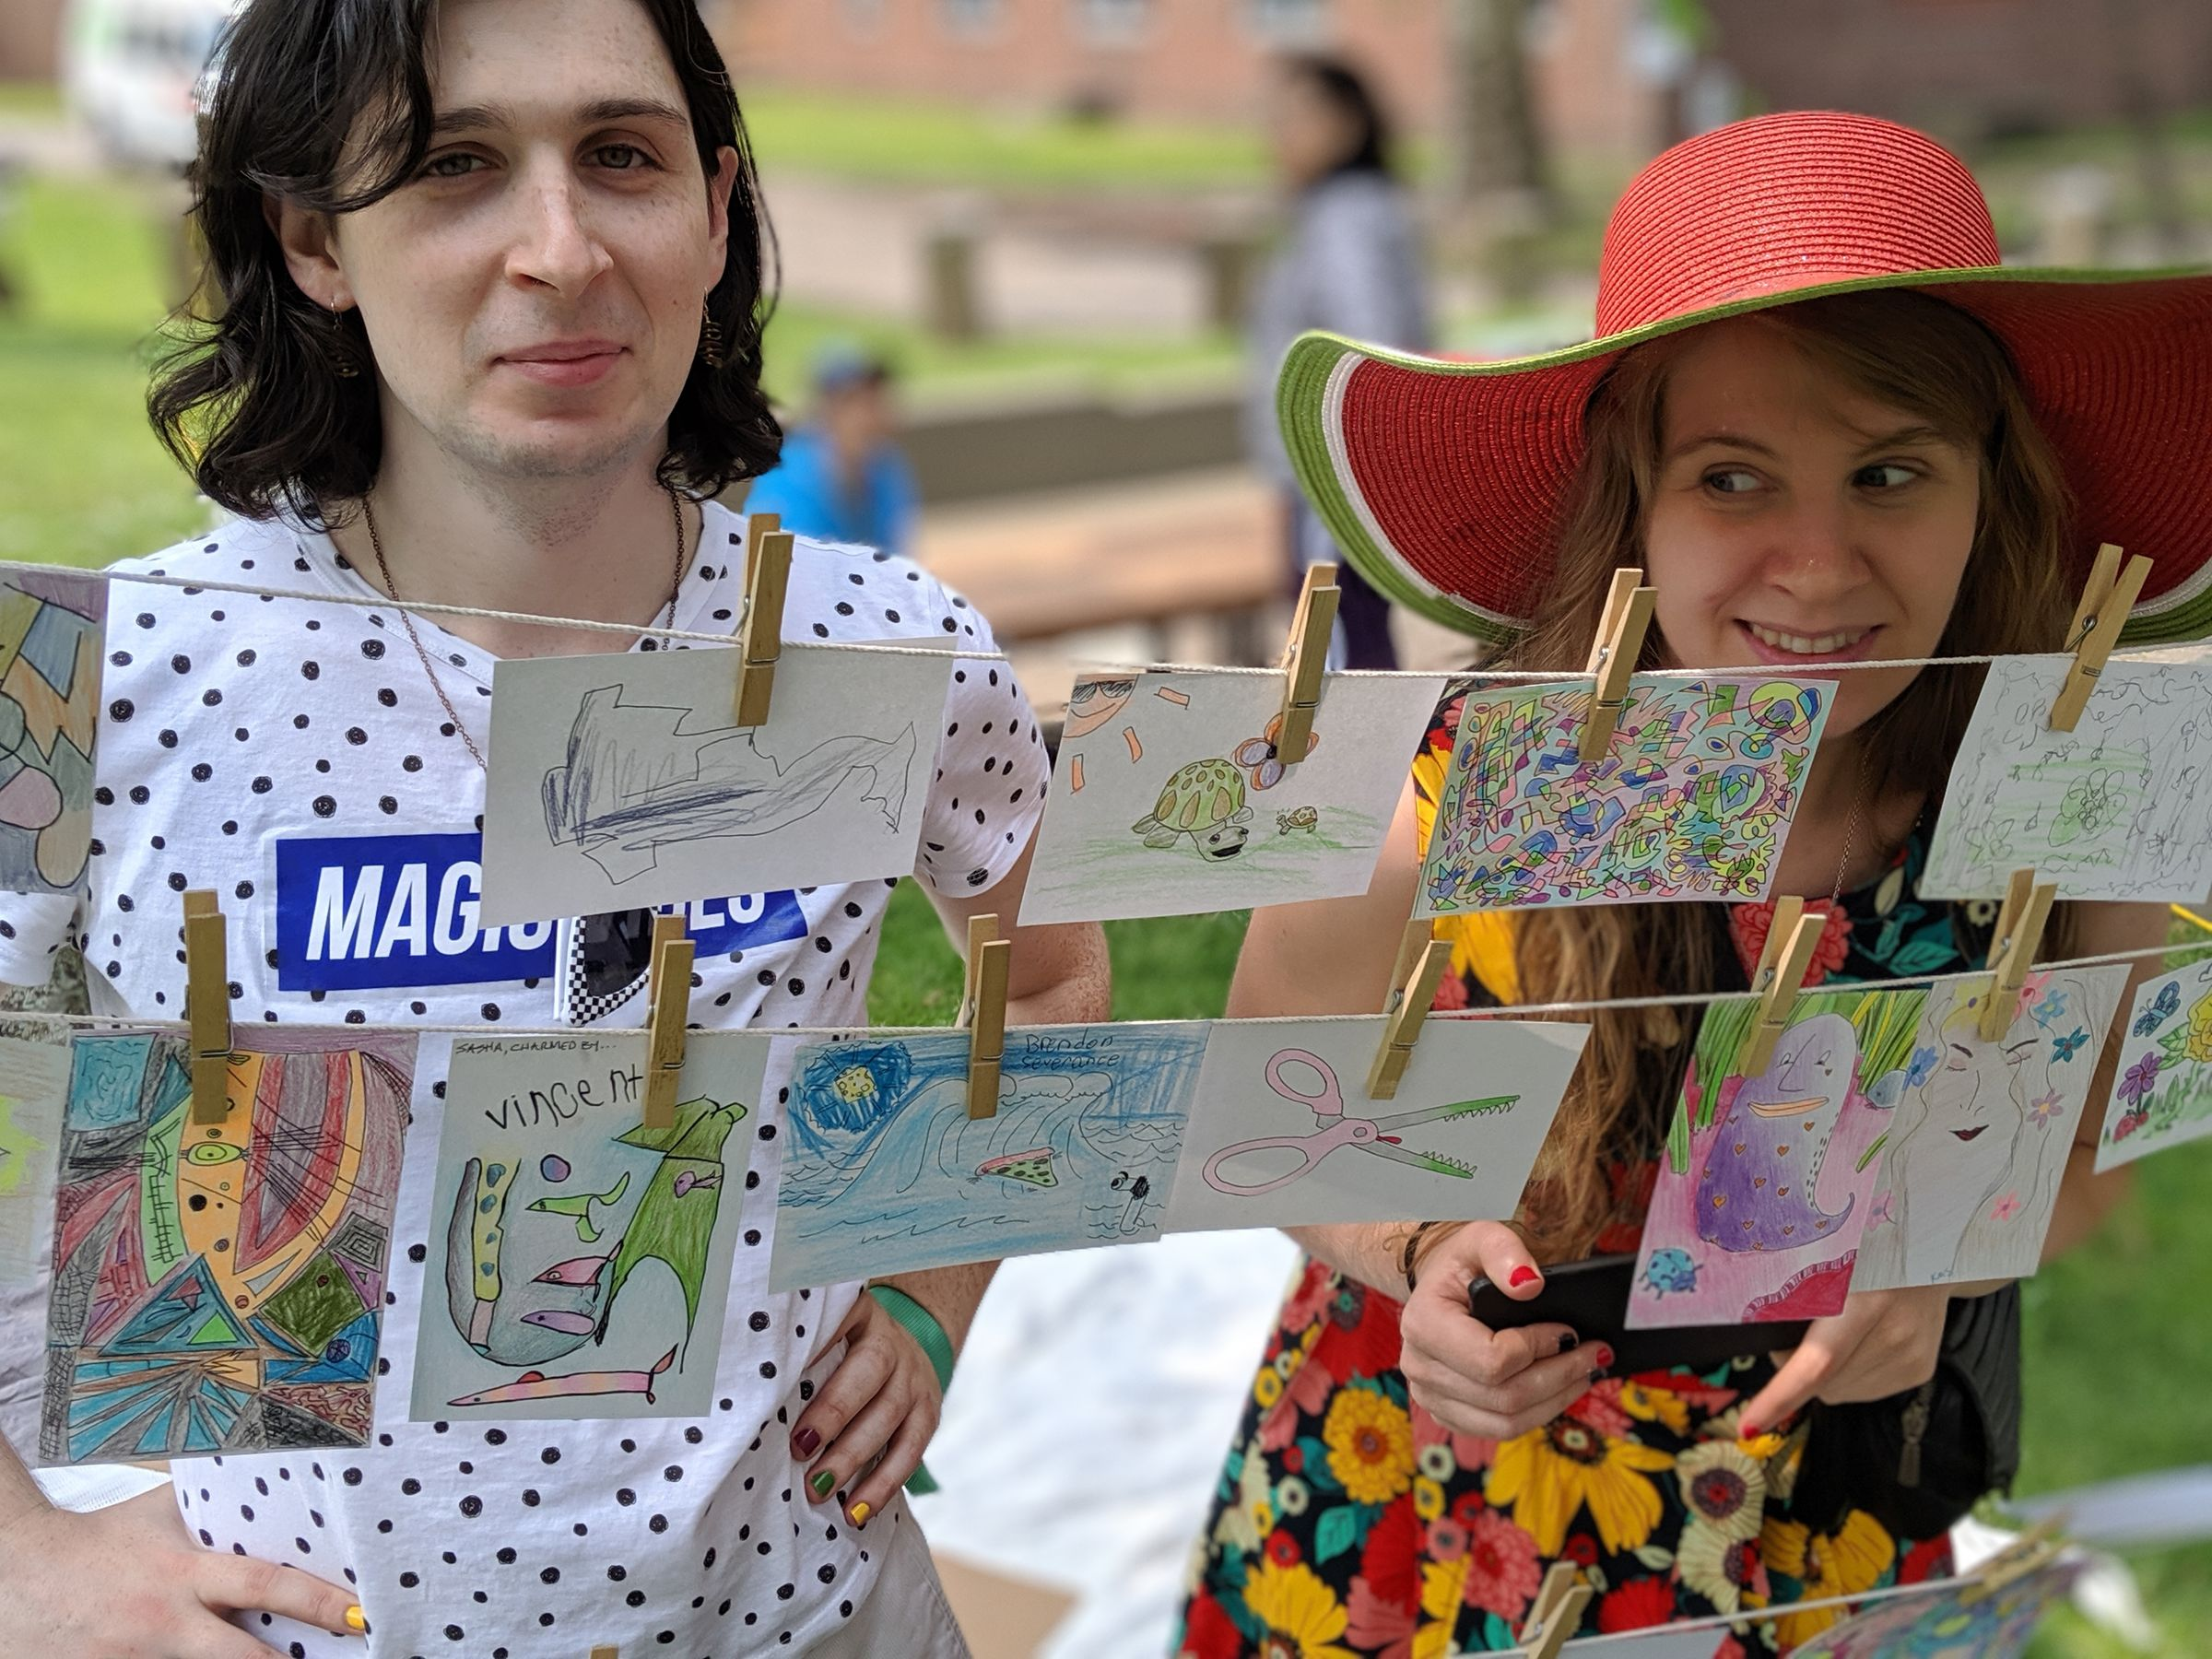 Two people standing behind three clotheslines with colored index cards hanging from it. On the left, one person looks into the camera smiling. Next to them, a person in a colorful dress and a bright sun hat looks at them.